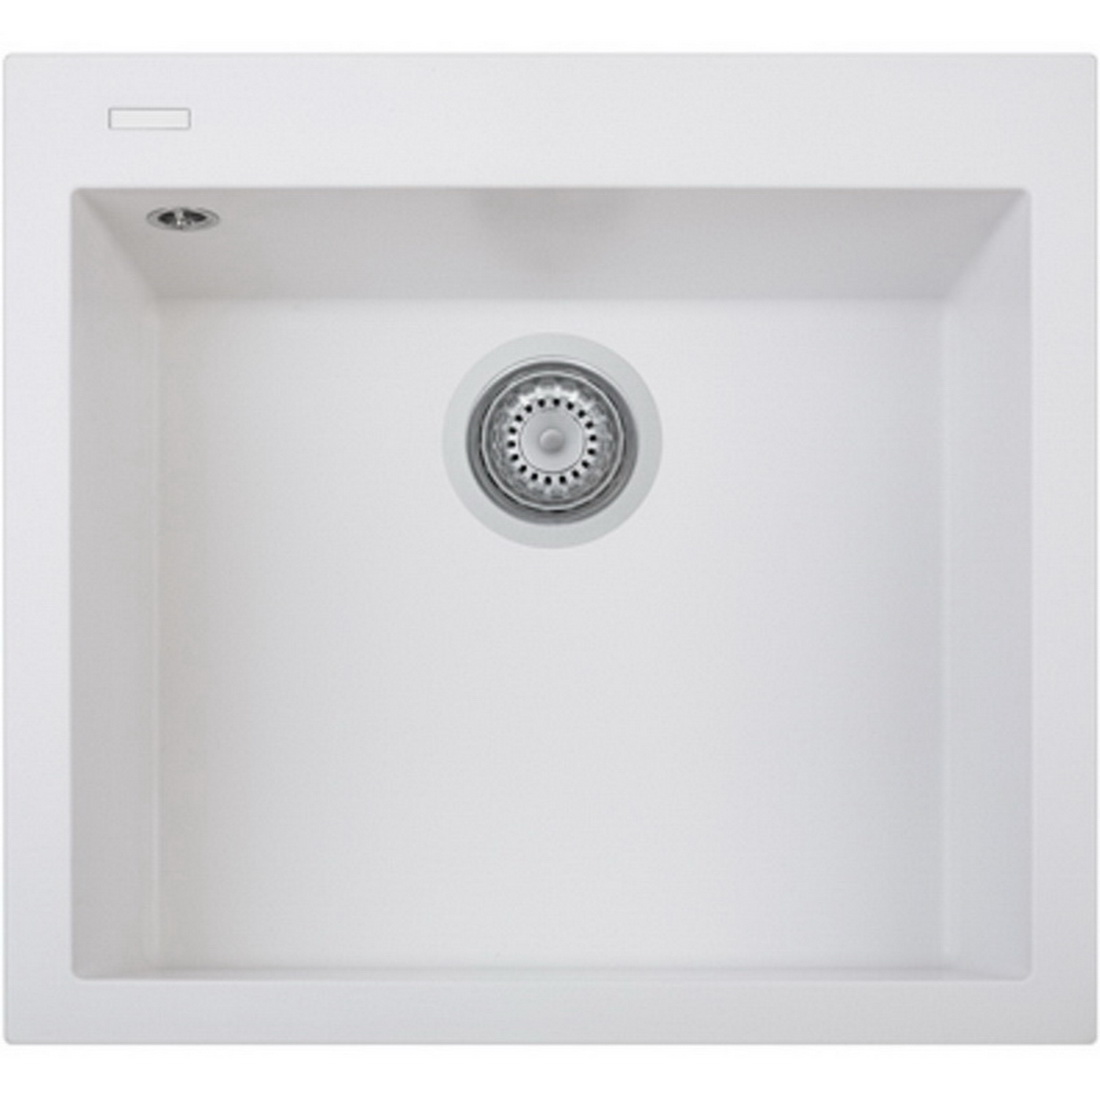 Telma Large Bowl Sink White